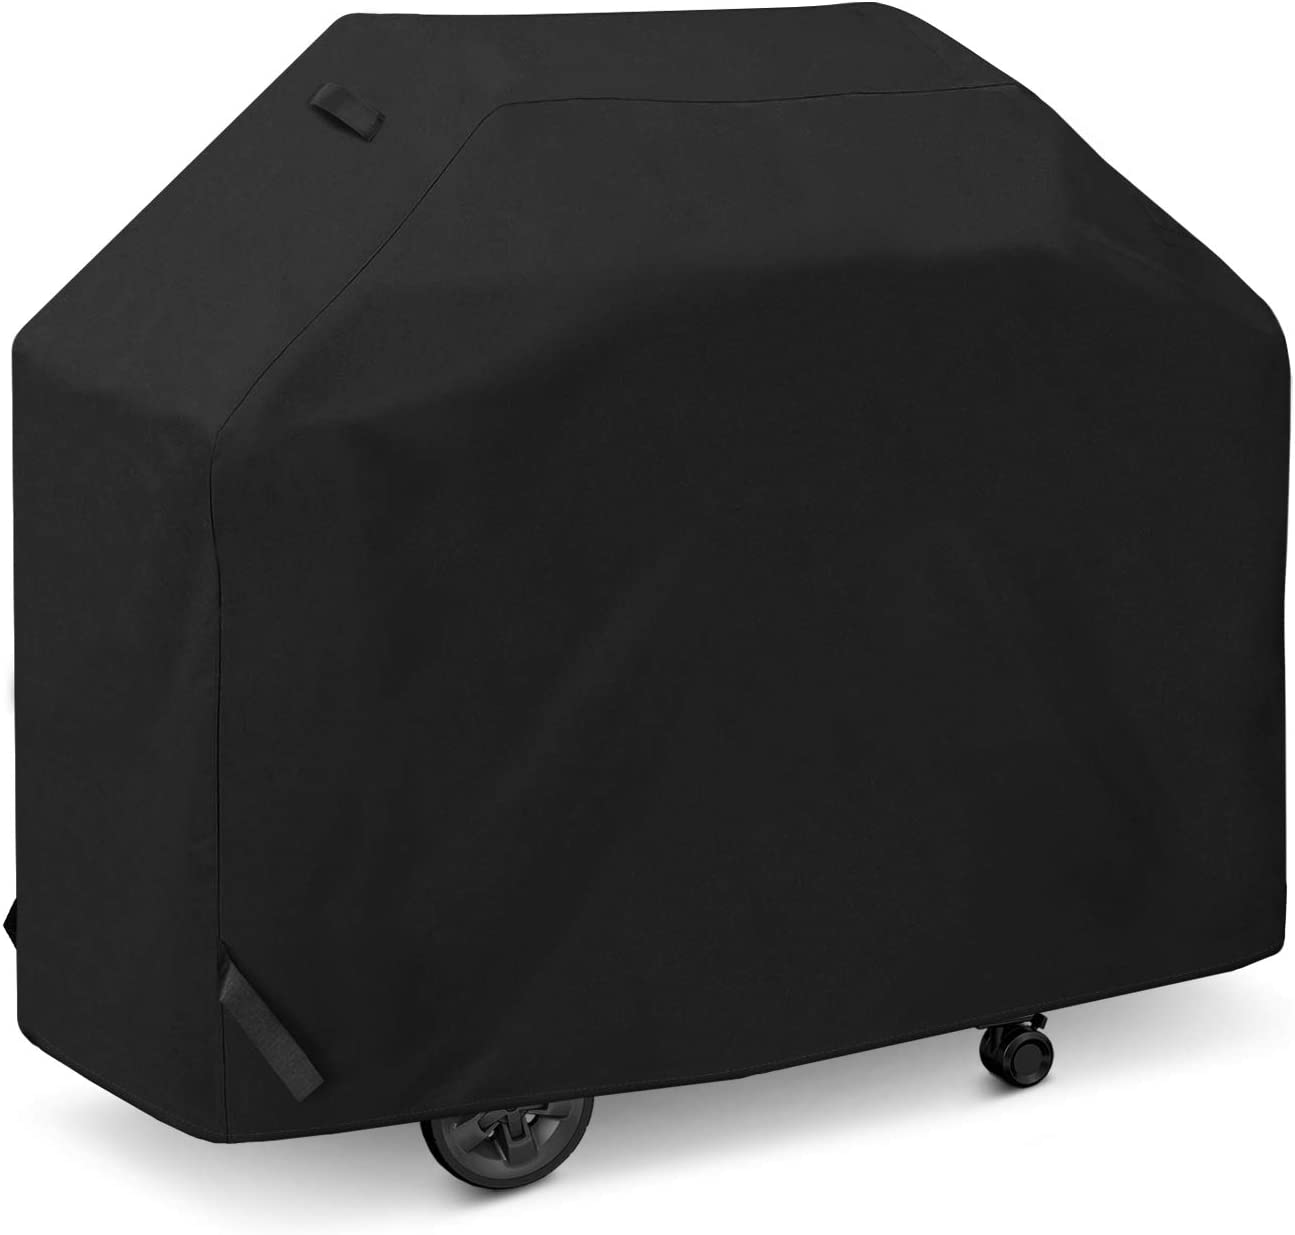 SunPatio Grill Cover 50 Inch, Outdoor Heavy Duty Waterproof Barbecue Gas Grill Cover, UV and Fade Resistant, All Weather Protection for Weber Char-Broil Dyna-Glo Nexgrill Grills and More, Black